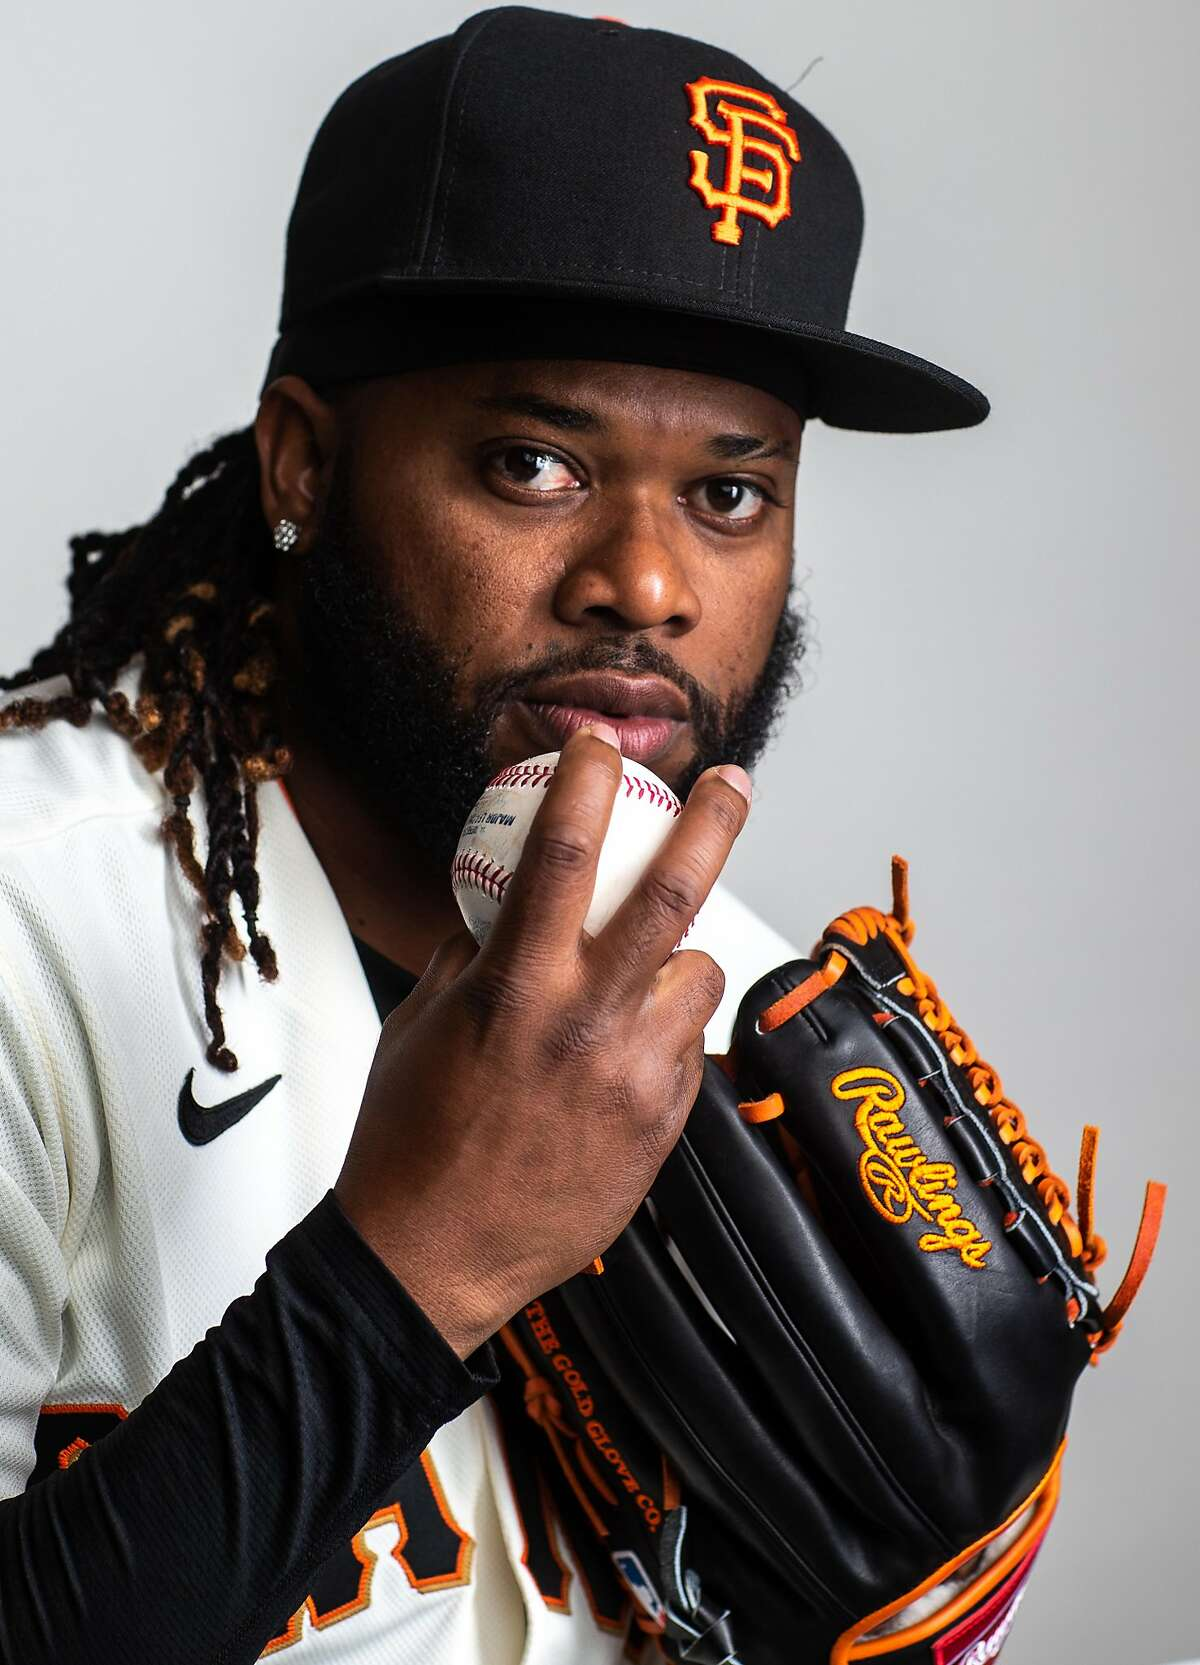 PHOENIX, AZ - FEBRUARY 18: Johnny Cueto $47 of the San Francisco Giants poses for a portrait on Photo Day at Scottsdale Stadium, the spring training complex of the San Francisco Giants on February 18, 2020 in Phoenix, Arizona. (Photo by Rob Tringali/Getty Images)